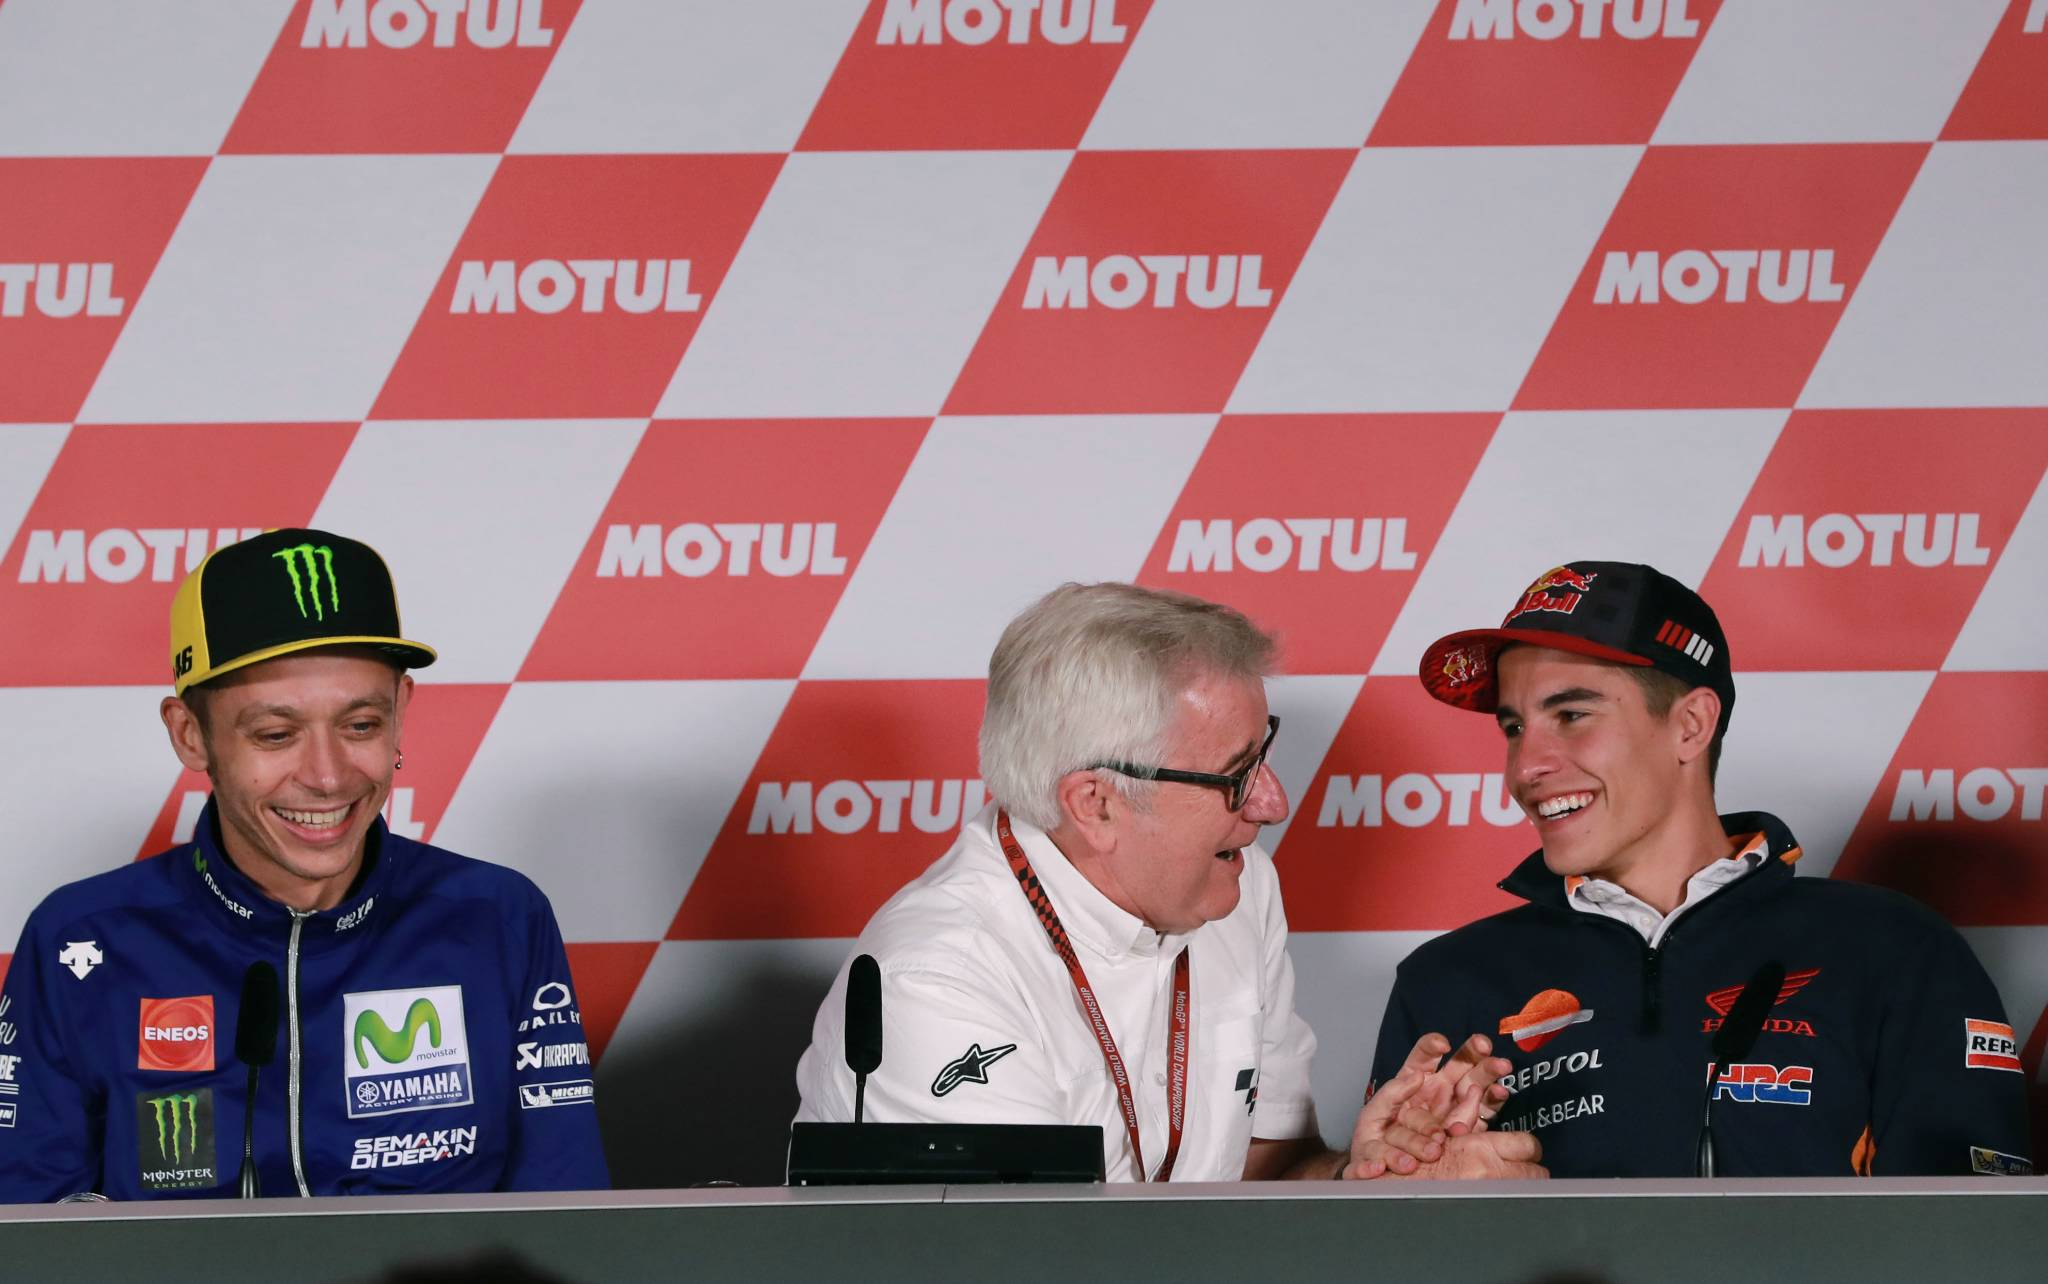 Nick Harris on MotoGP's best era and what makes Marquez special